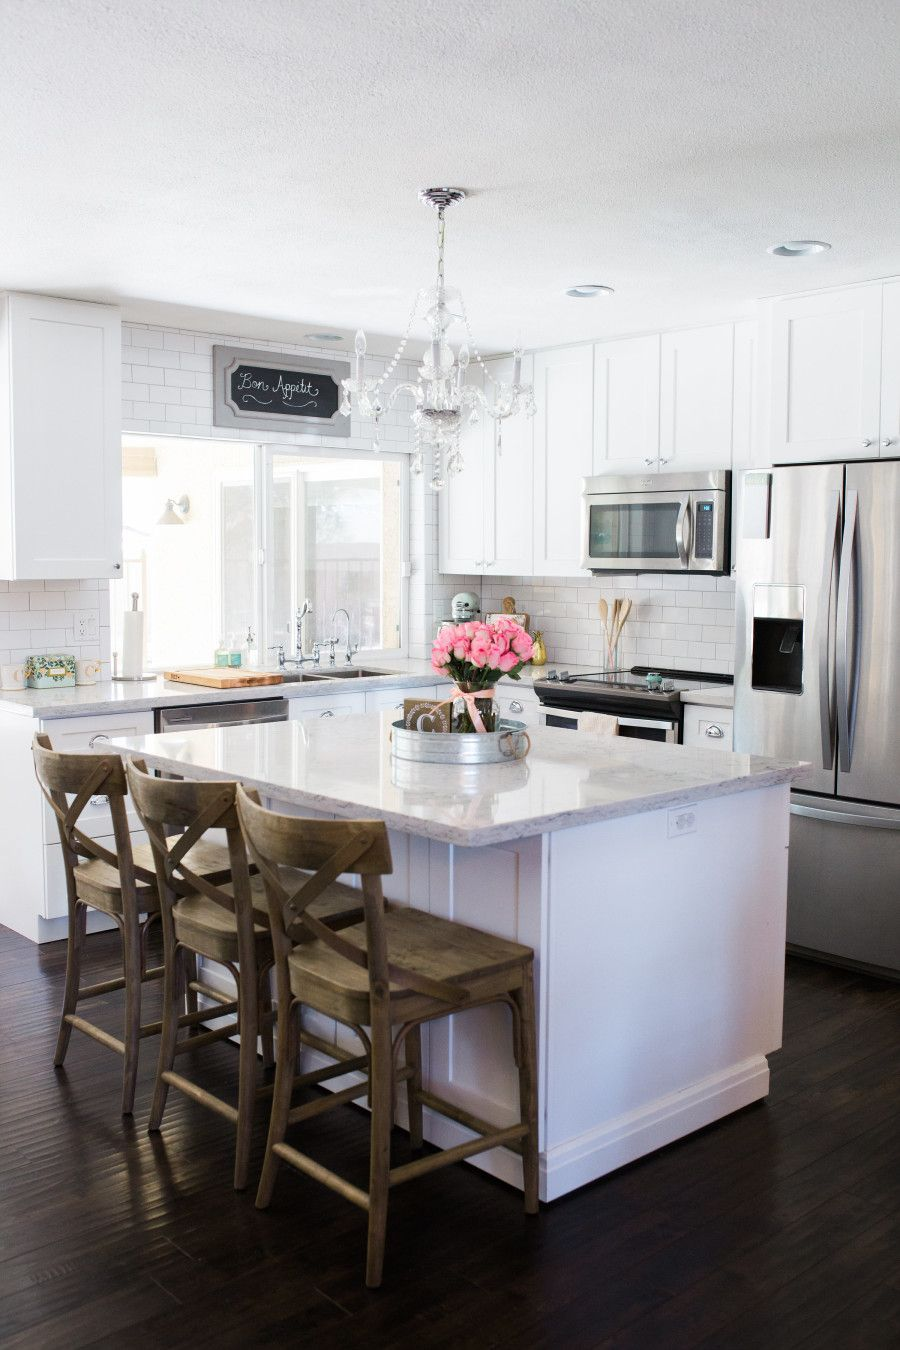 Kitchen remodel on a budget for under 10,000 Sharing our